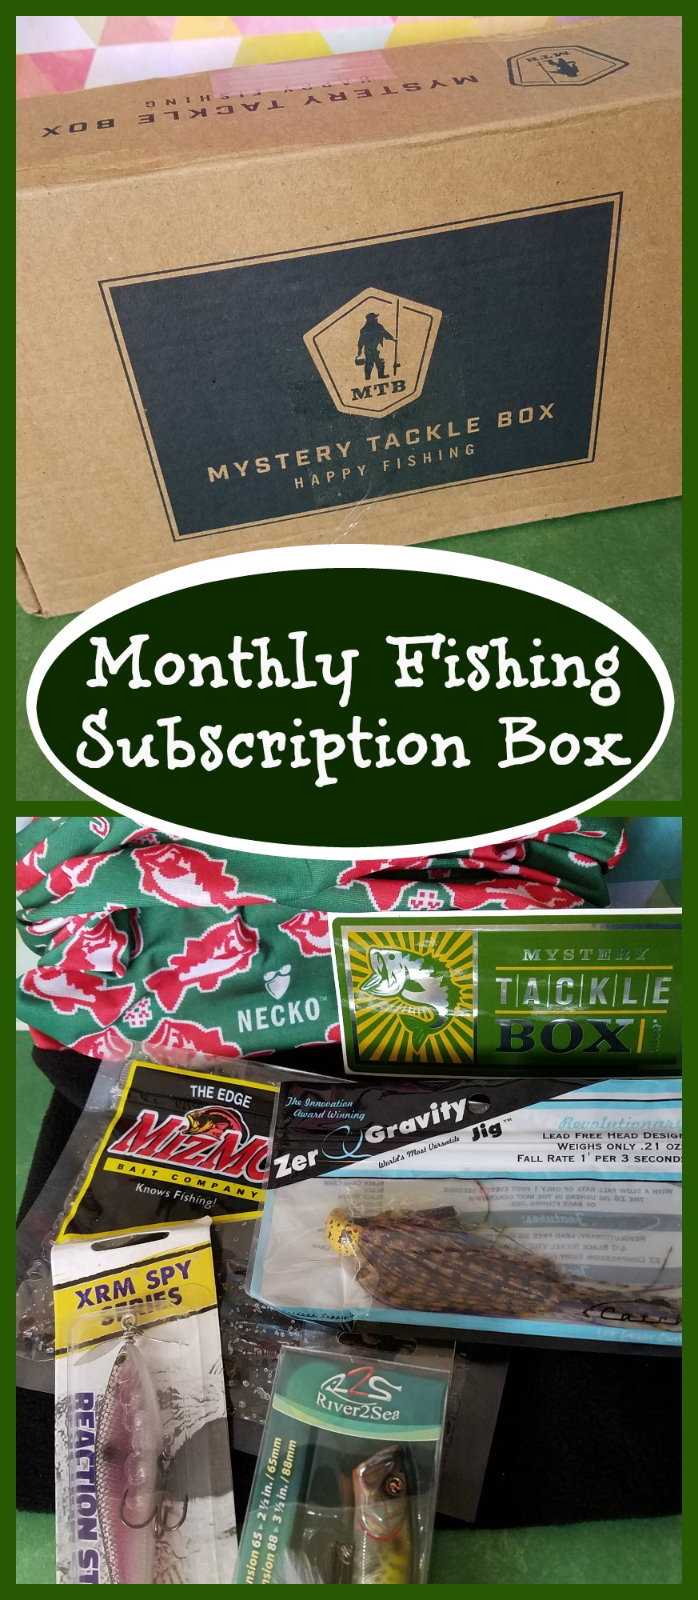 Mystery tackle box review by amy smith subscription gift for Fishing box subscription